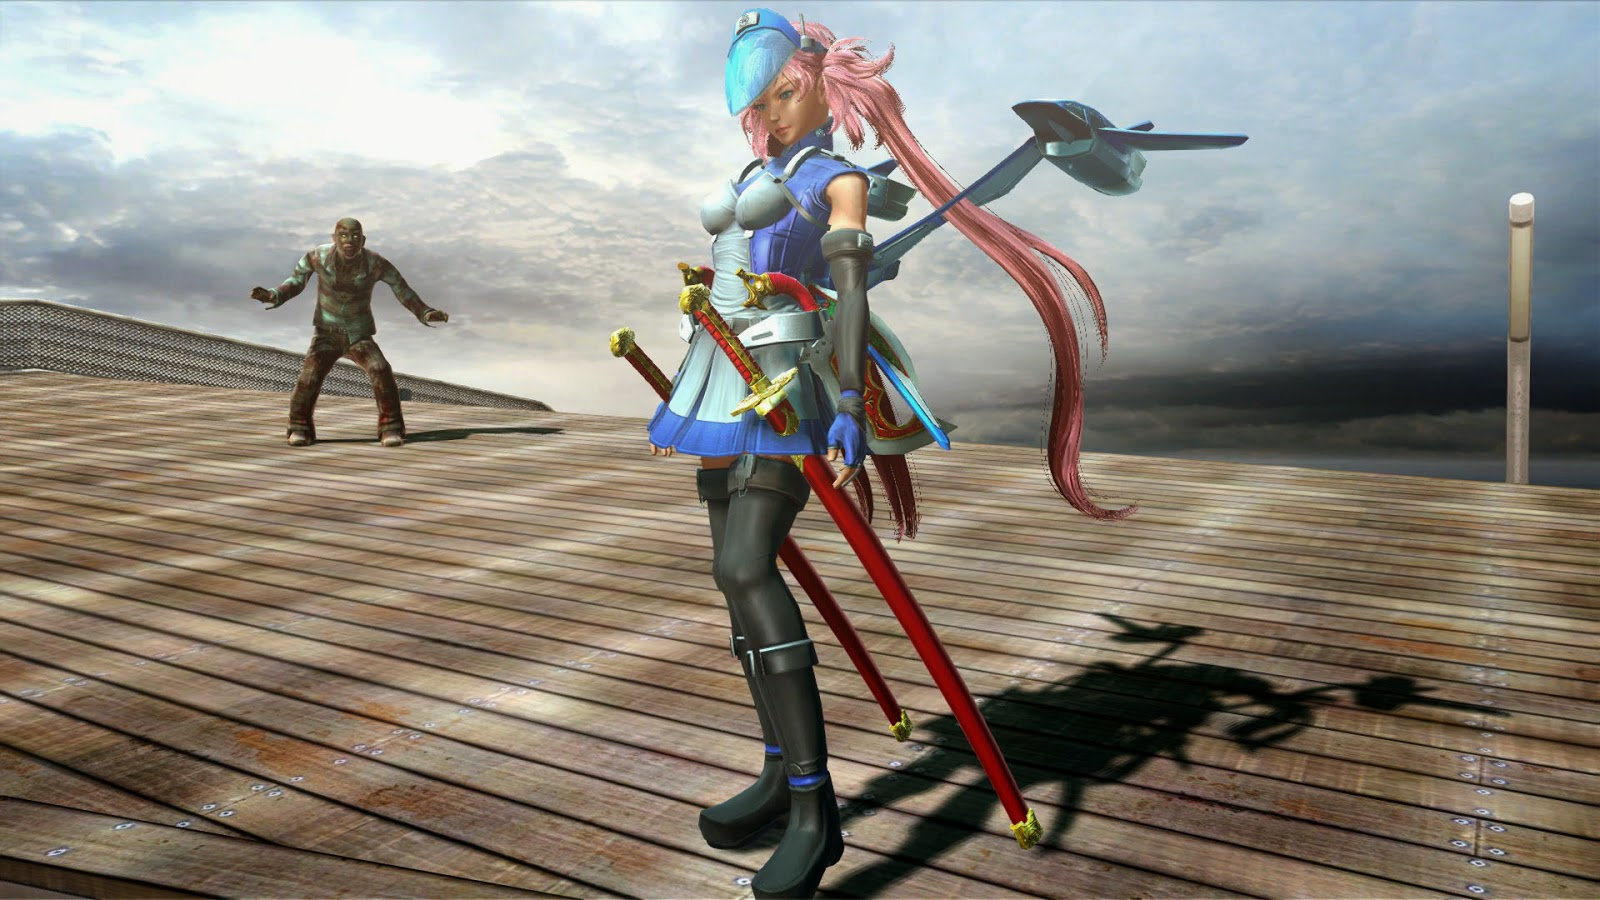 Onechanbara Z2 Chaos for PS4 releases on October 30th 2014 in Japan 1600x900